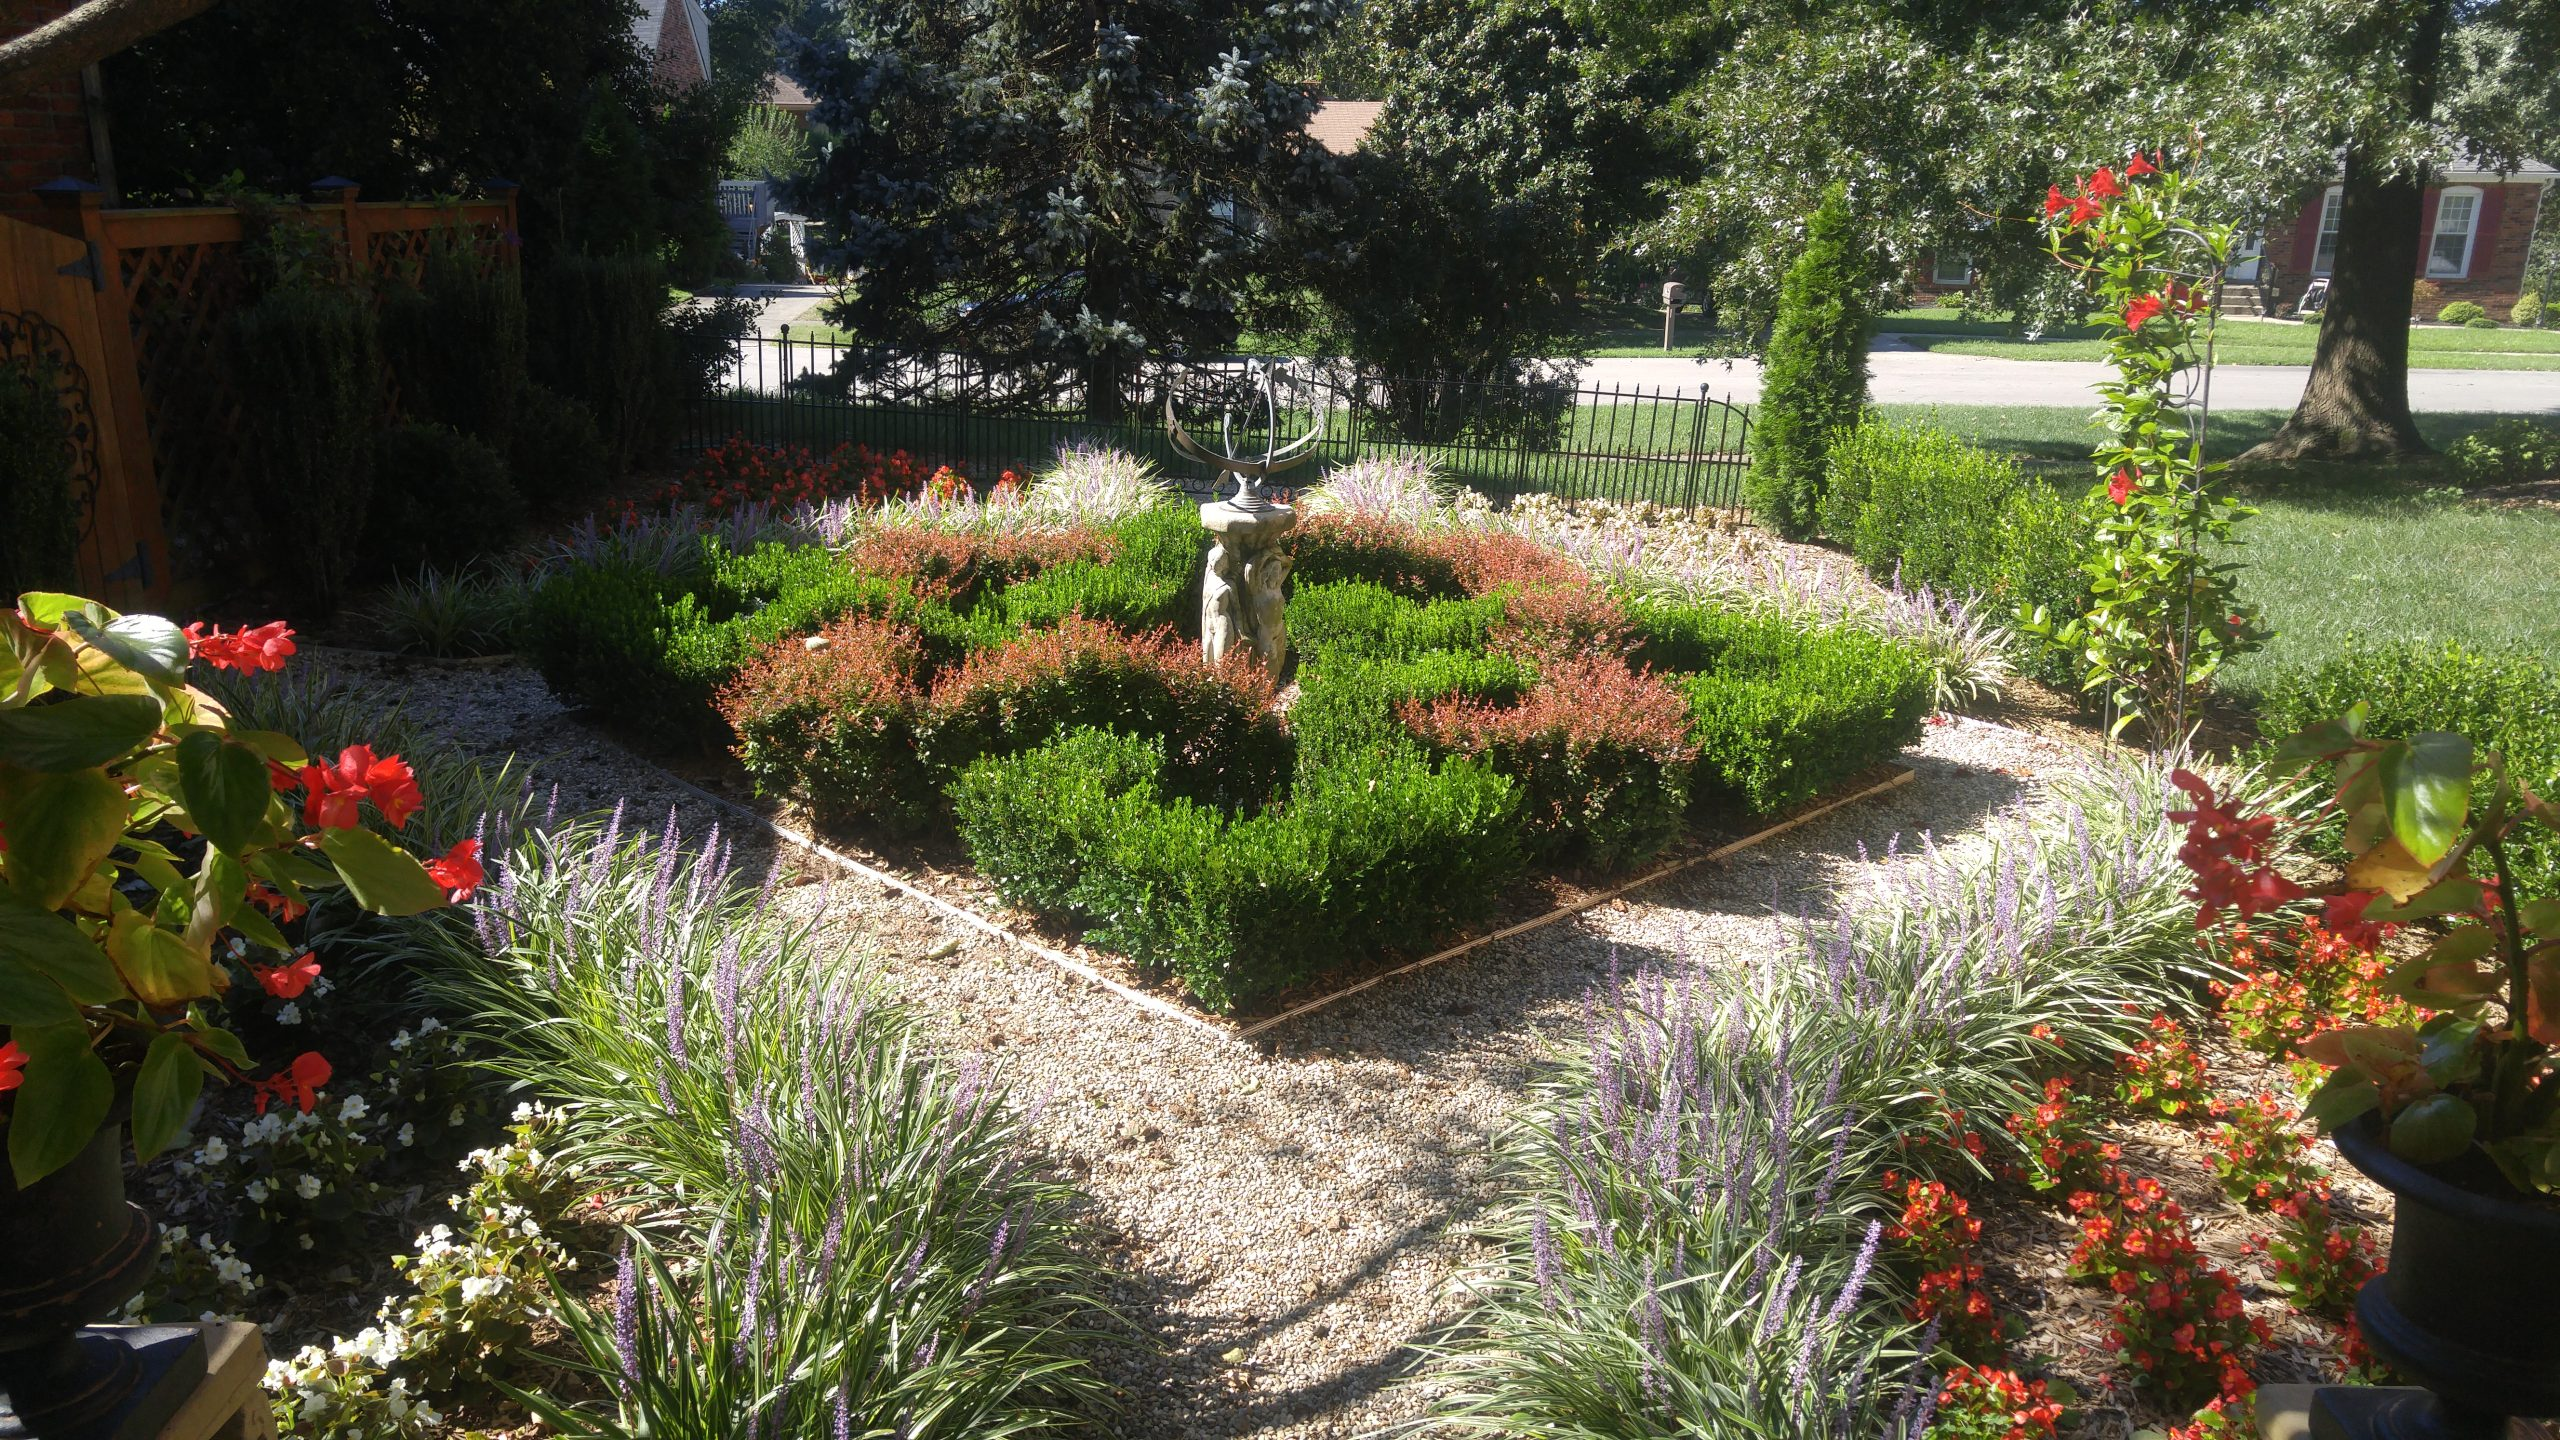 Elysium's Knot Garden (six years & needing to be trimmed)